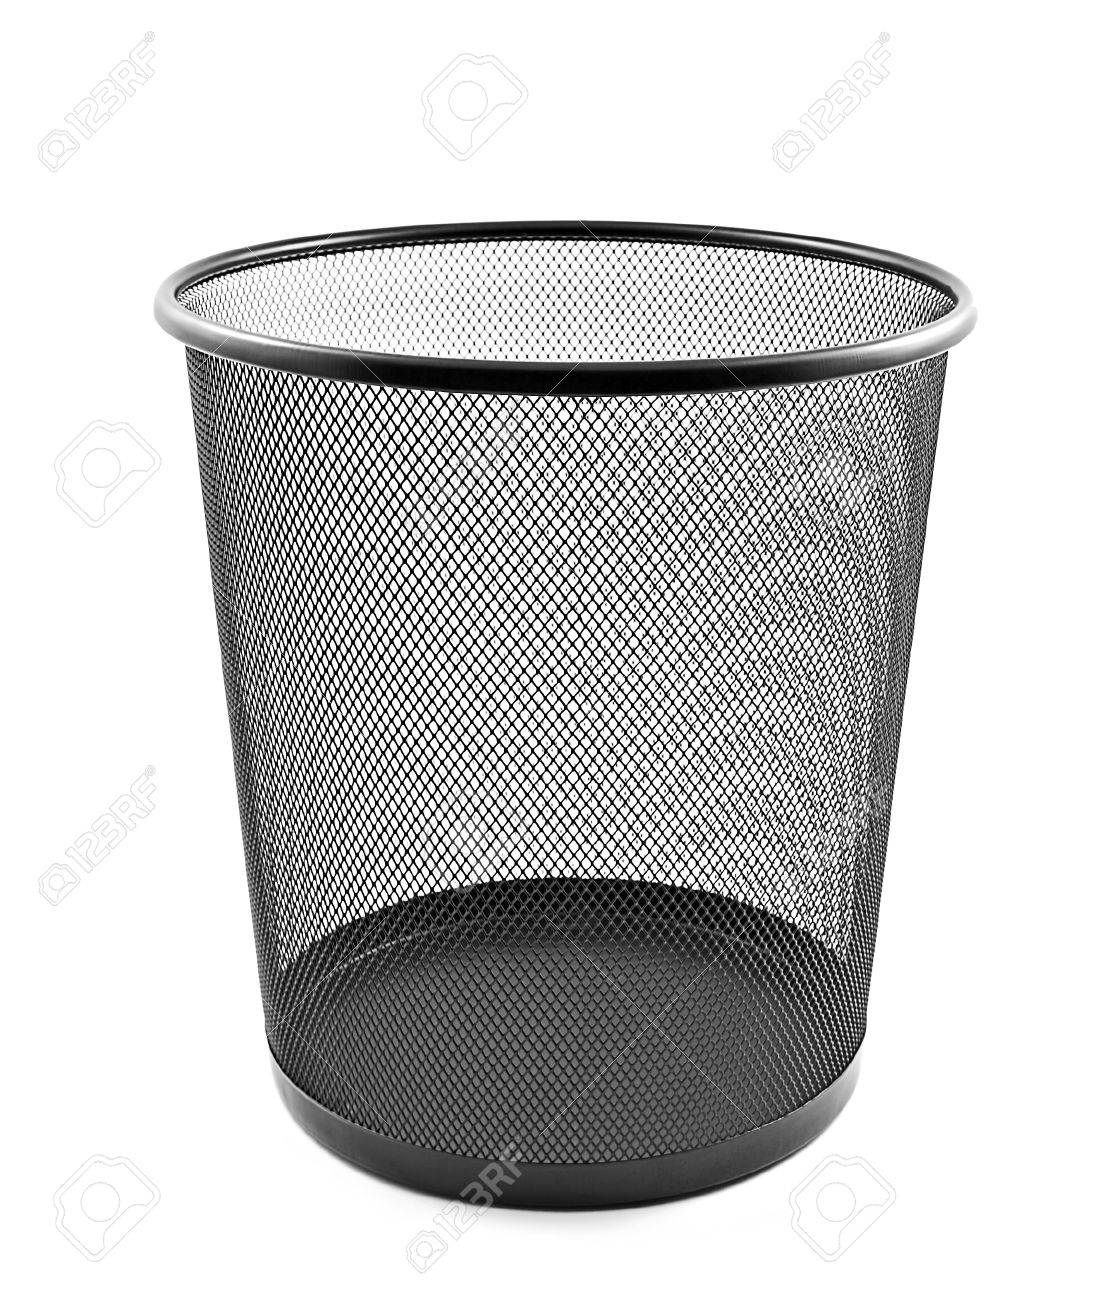 empty wastepaper basket stock photo picture and royalty free  - empty wastepaper basket stock photo